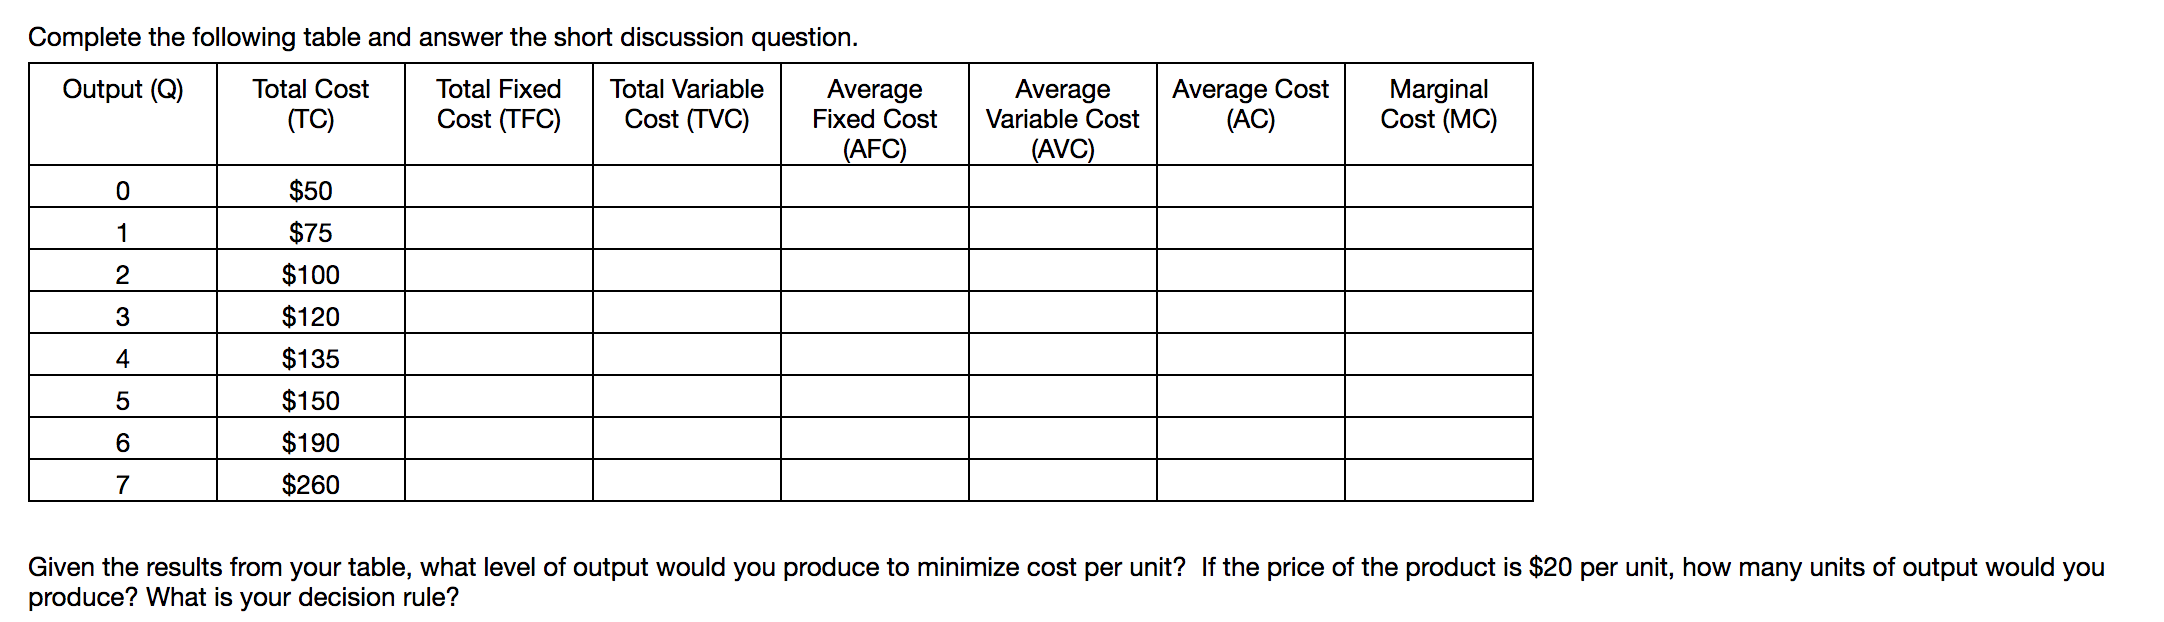 Complete the following table and answer the short discussion question. Average Cost (AC) Average Fixed Cost Total Cost Average Variable Cost Output (Q) Total Fixed Total Variable Marginal Cost (MC) Cost (TVC) Cost (TFC) (TC) (AFC) (AVC) $50 $75 1 $100 2 $120 3 $135 4 $150 5 $190 6 $260 Given the results from your table, what level of output would you produce to minimize cost per unit? If the price of the product is $20 per unit, how many units of output would you produce? What is your decision rule?